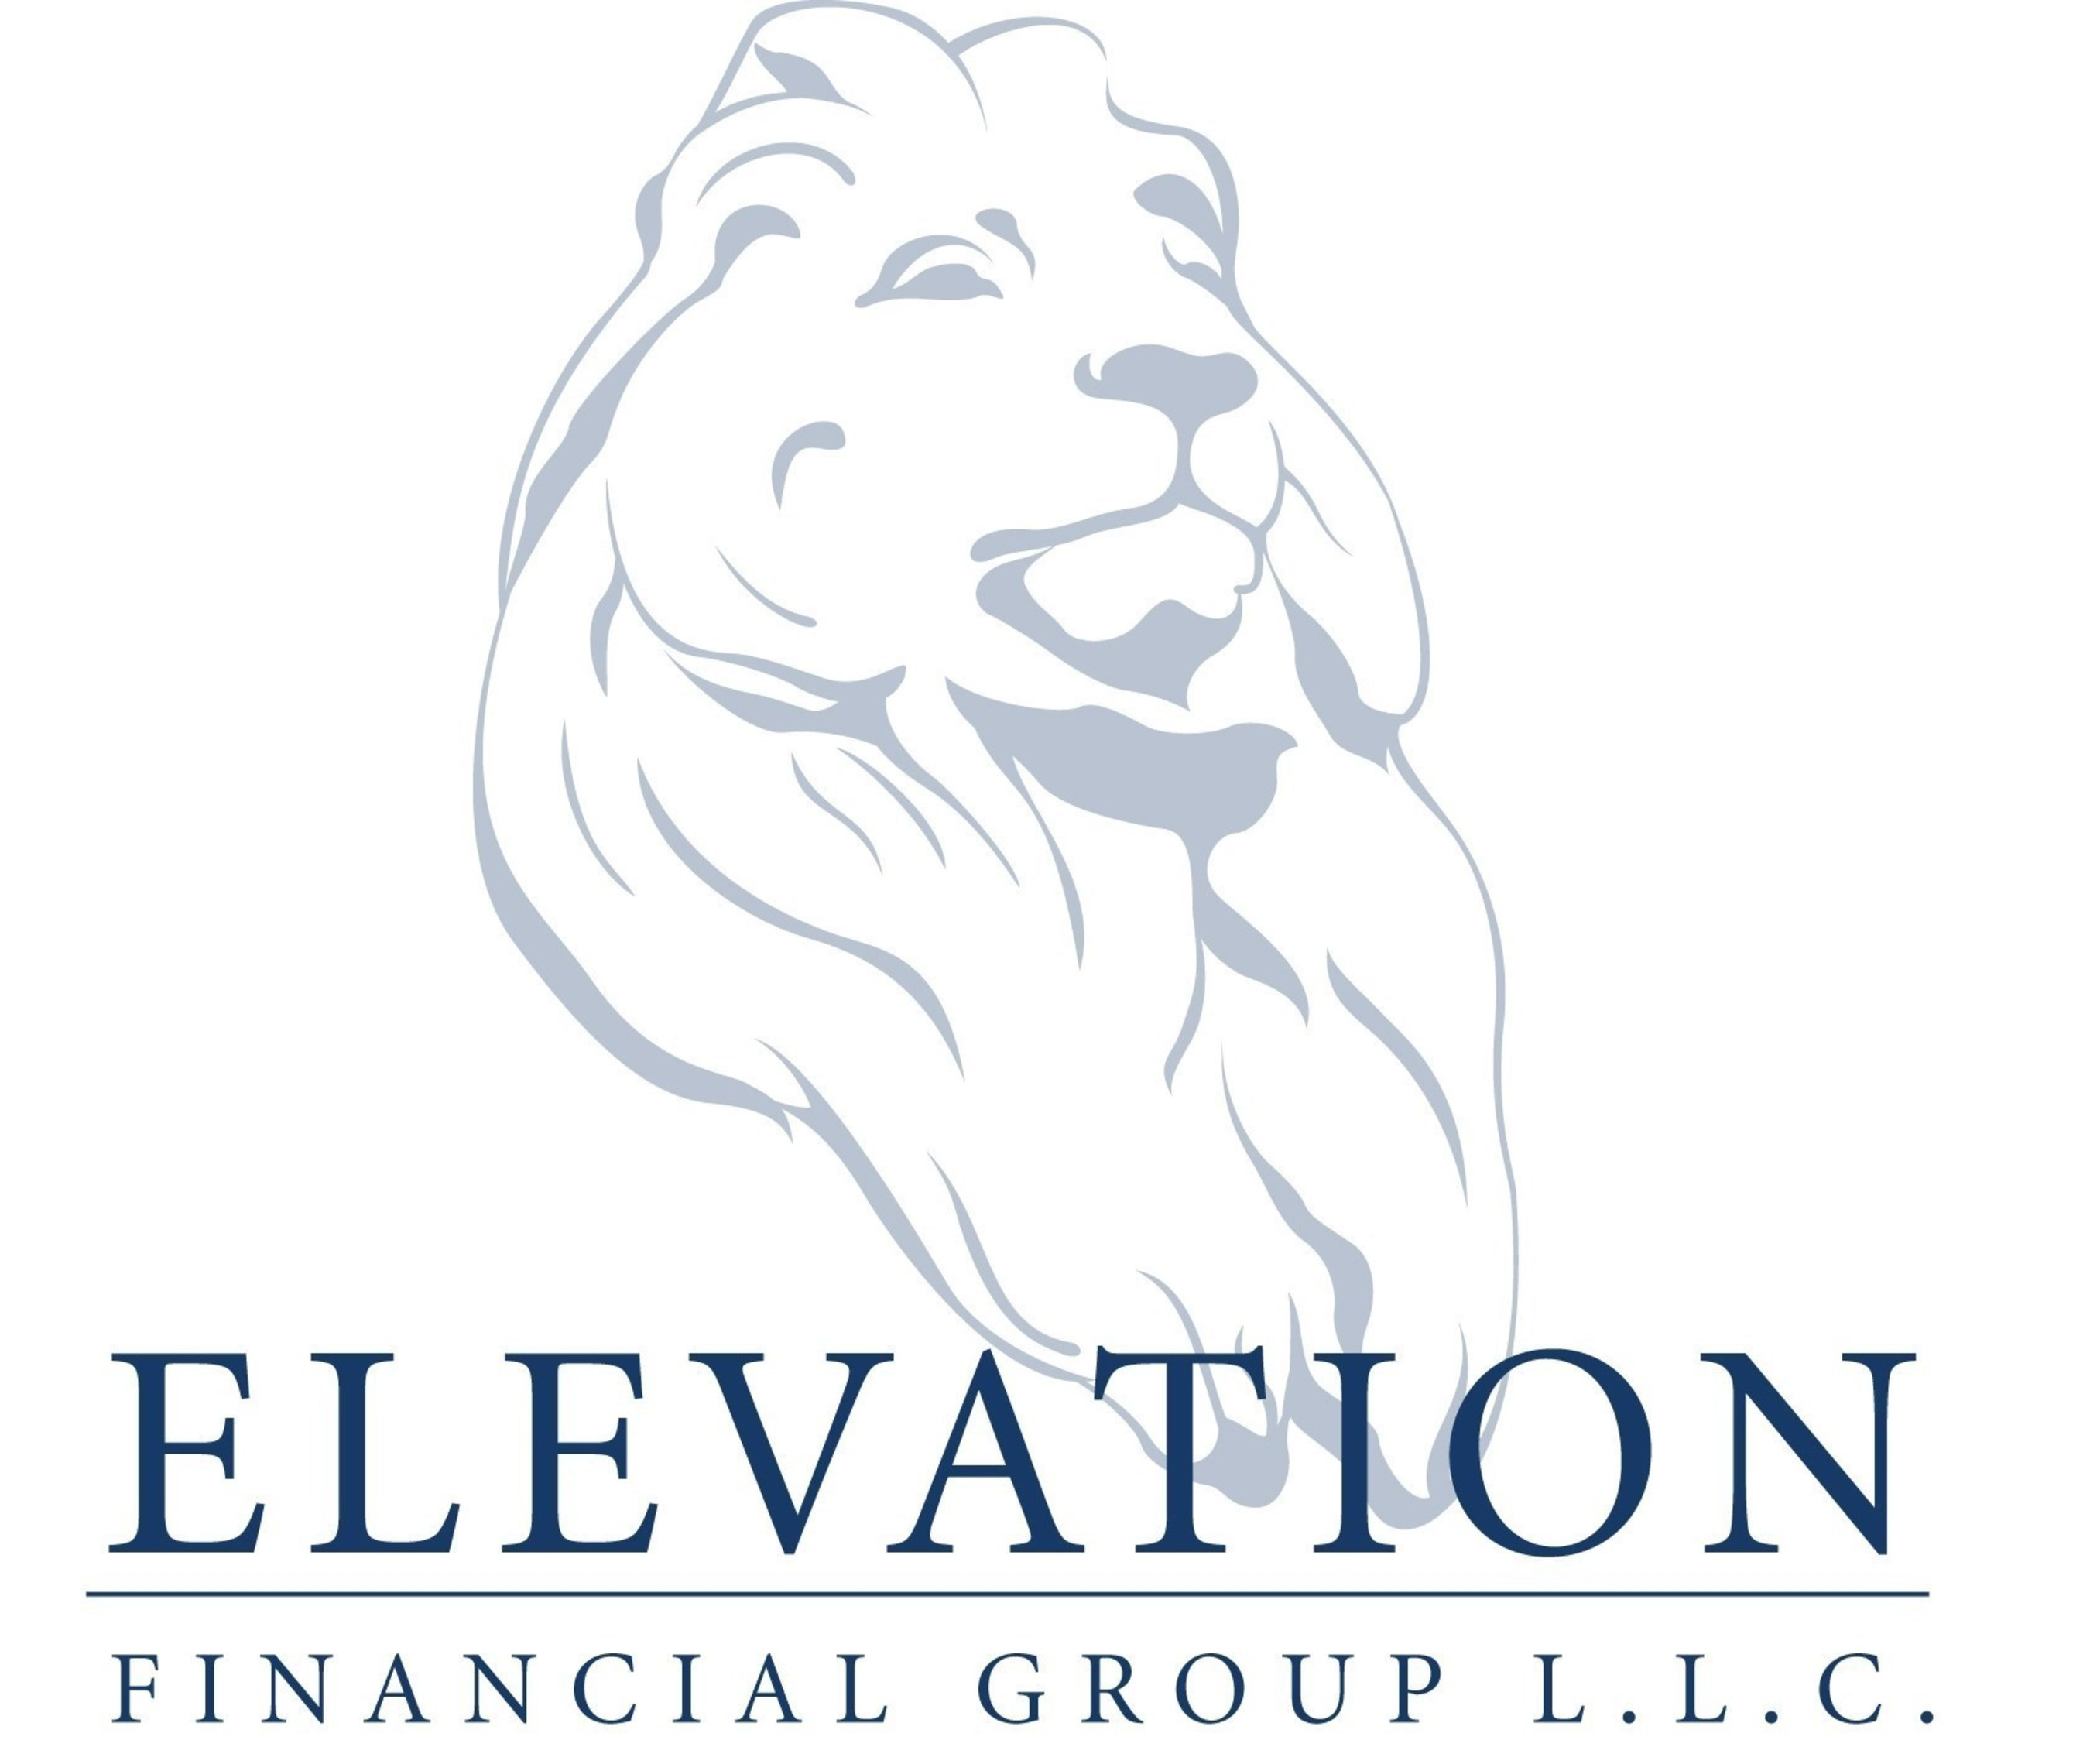 elevation financial group expands into alabama the elevation financial group llc